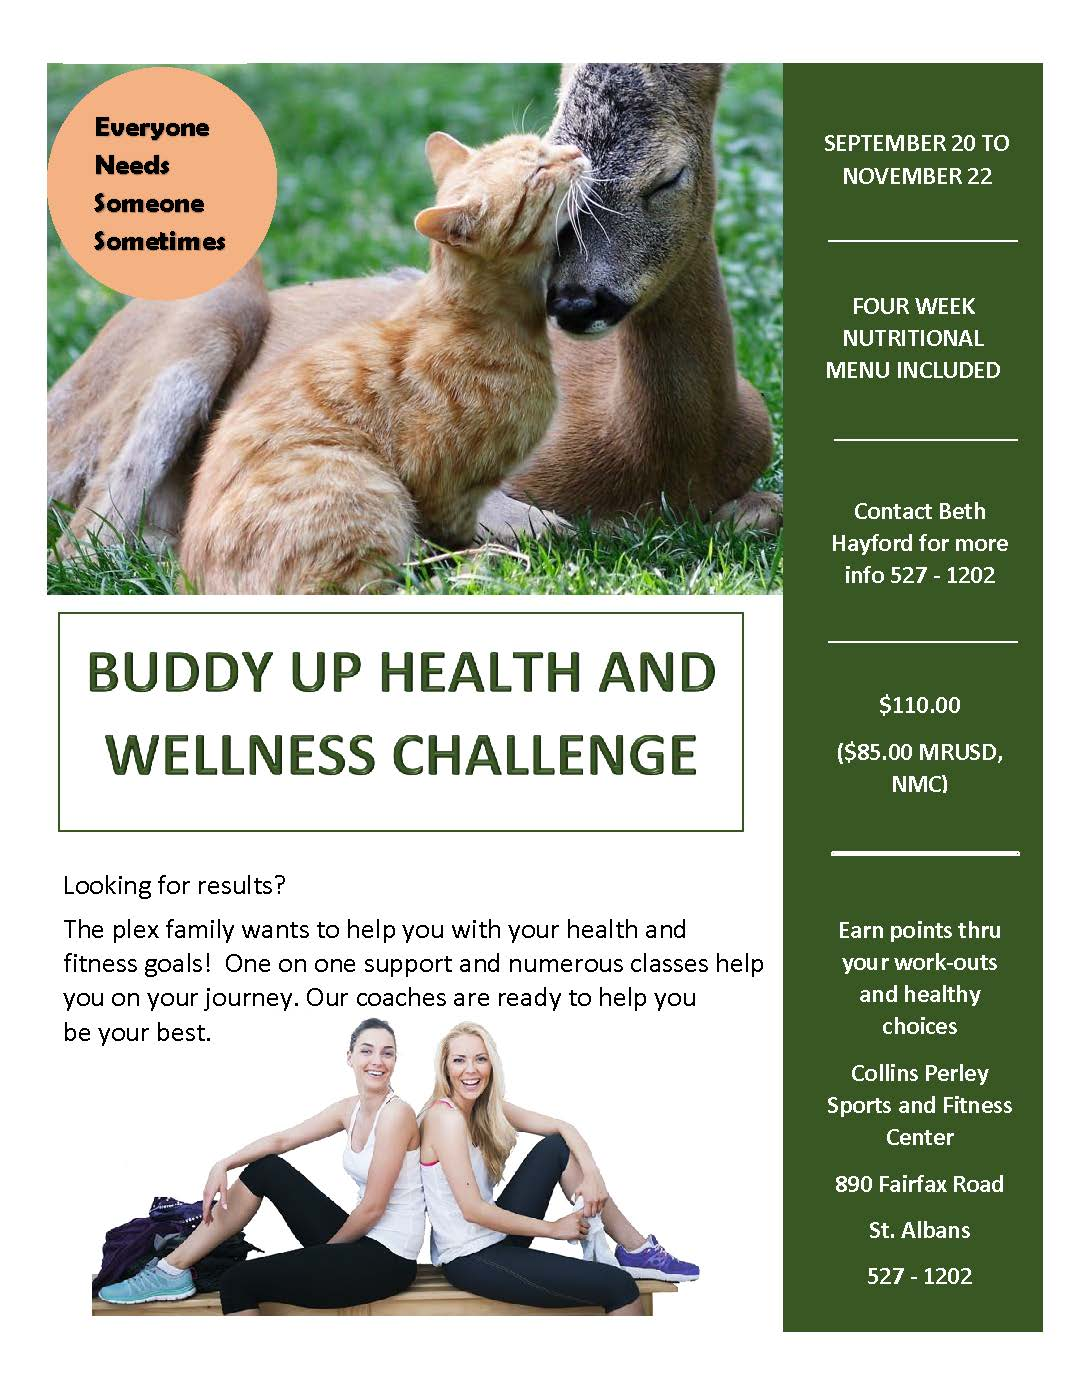 Buddy Up Challenge Overview